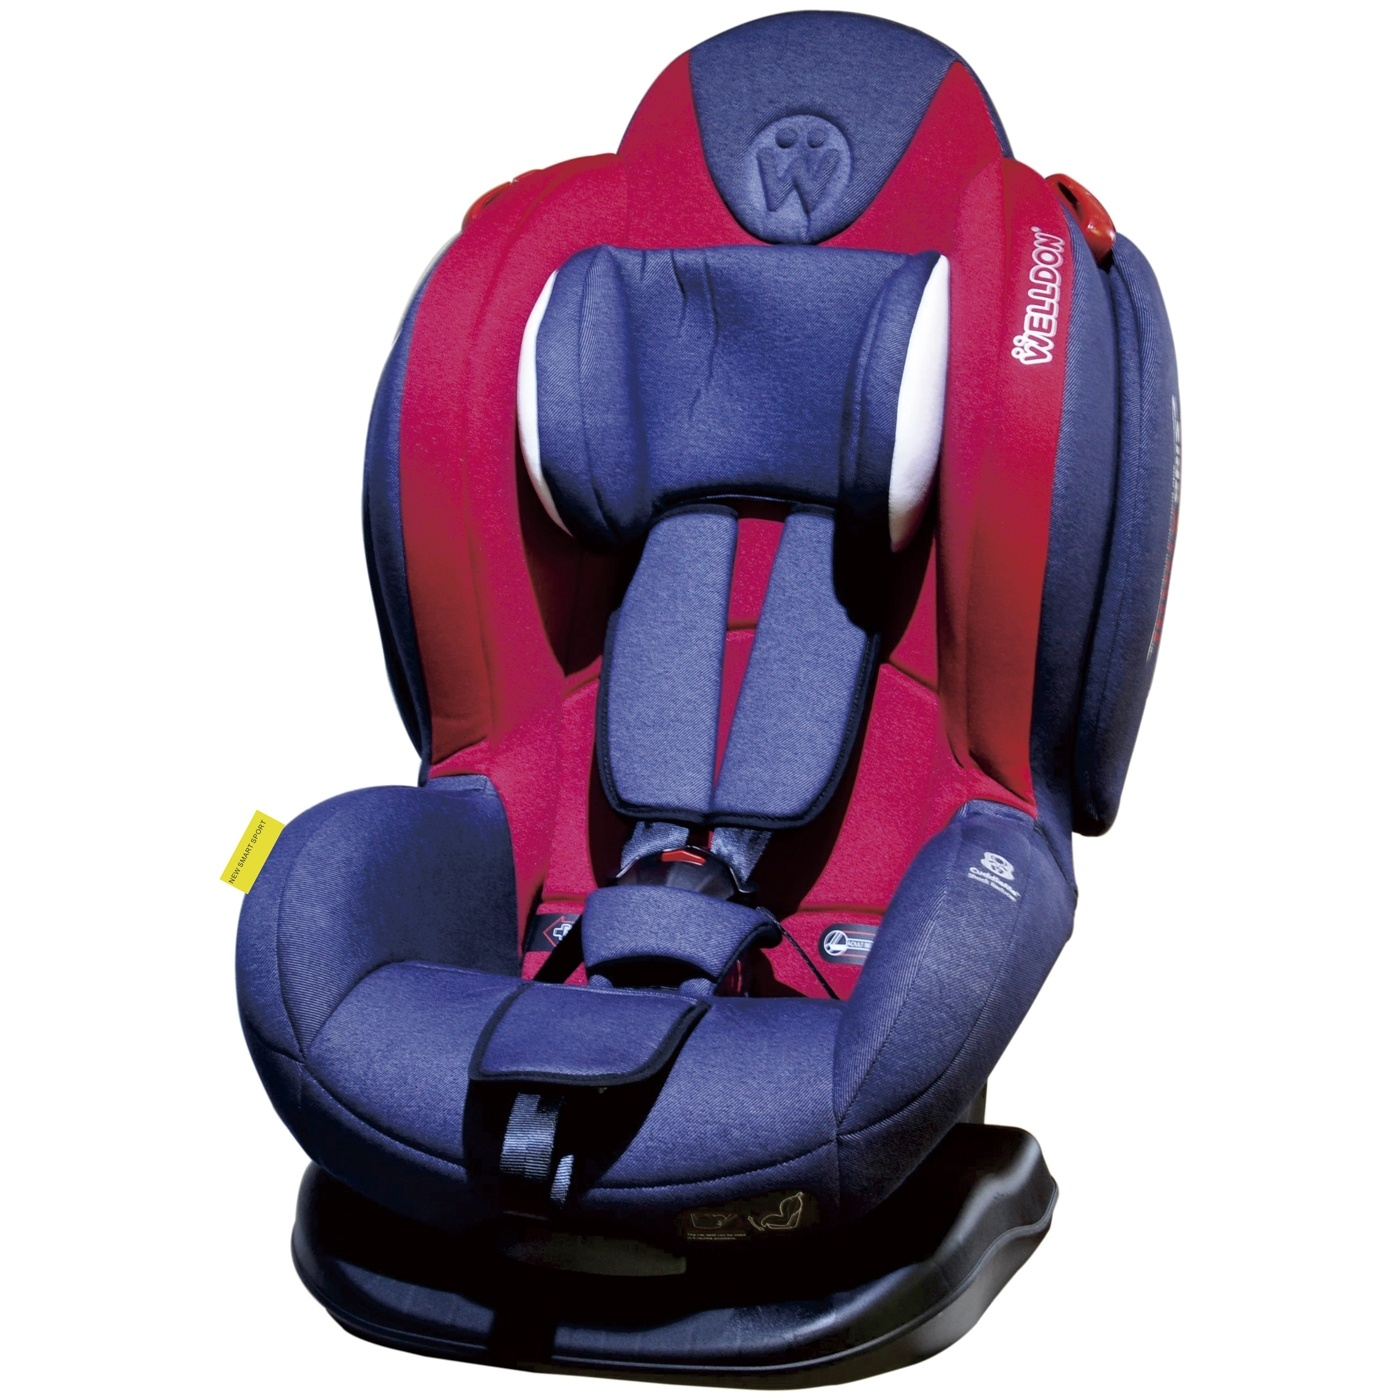 Автокресло Welldon Smart Sport (Jean) автокресло welldon royal baby side armor